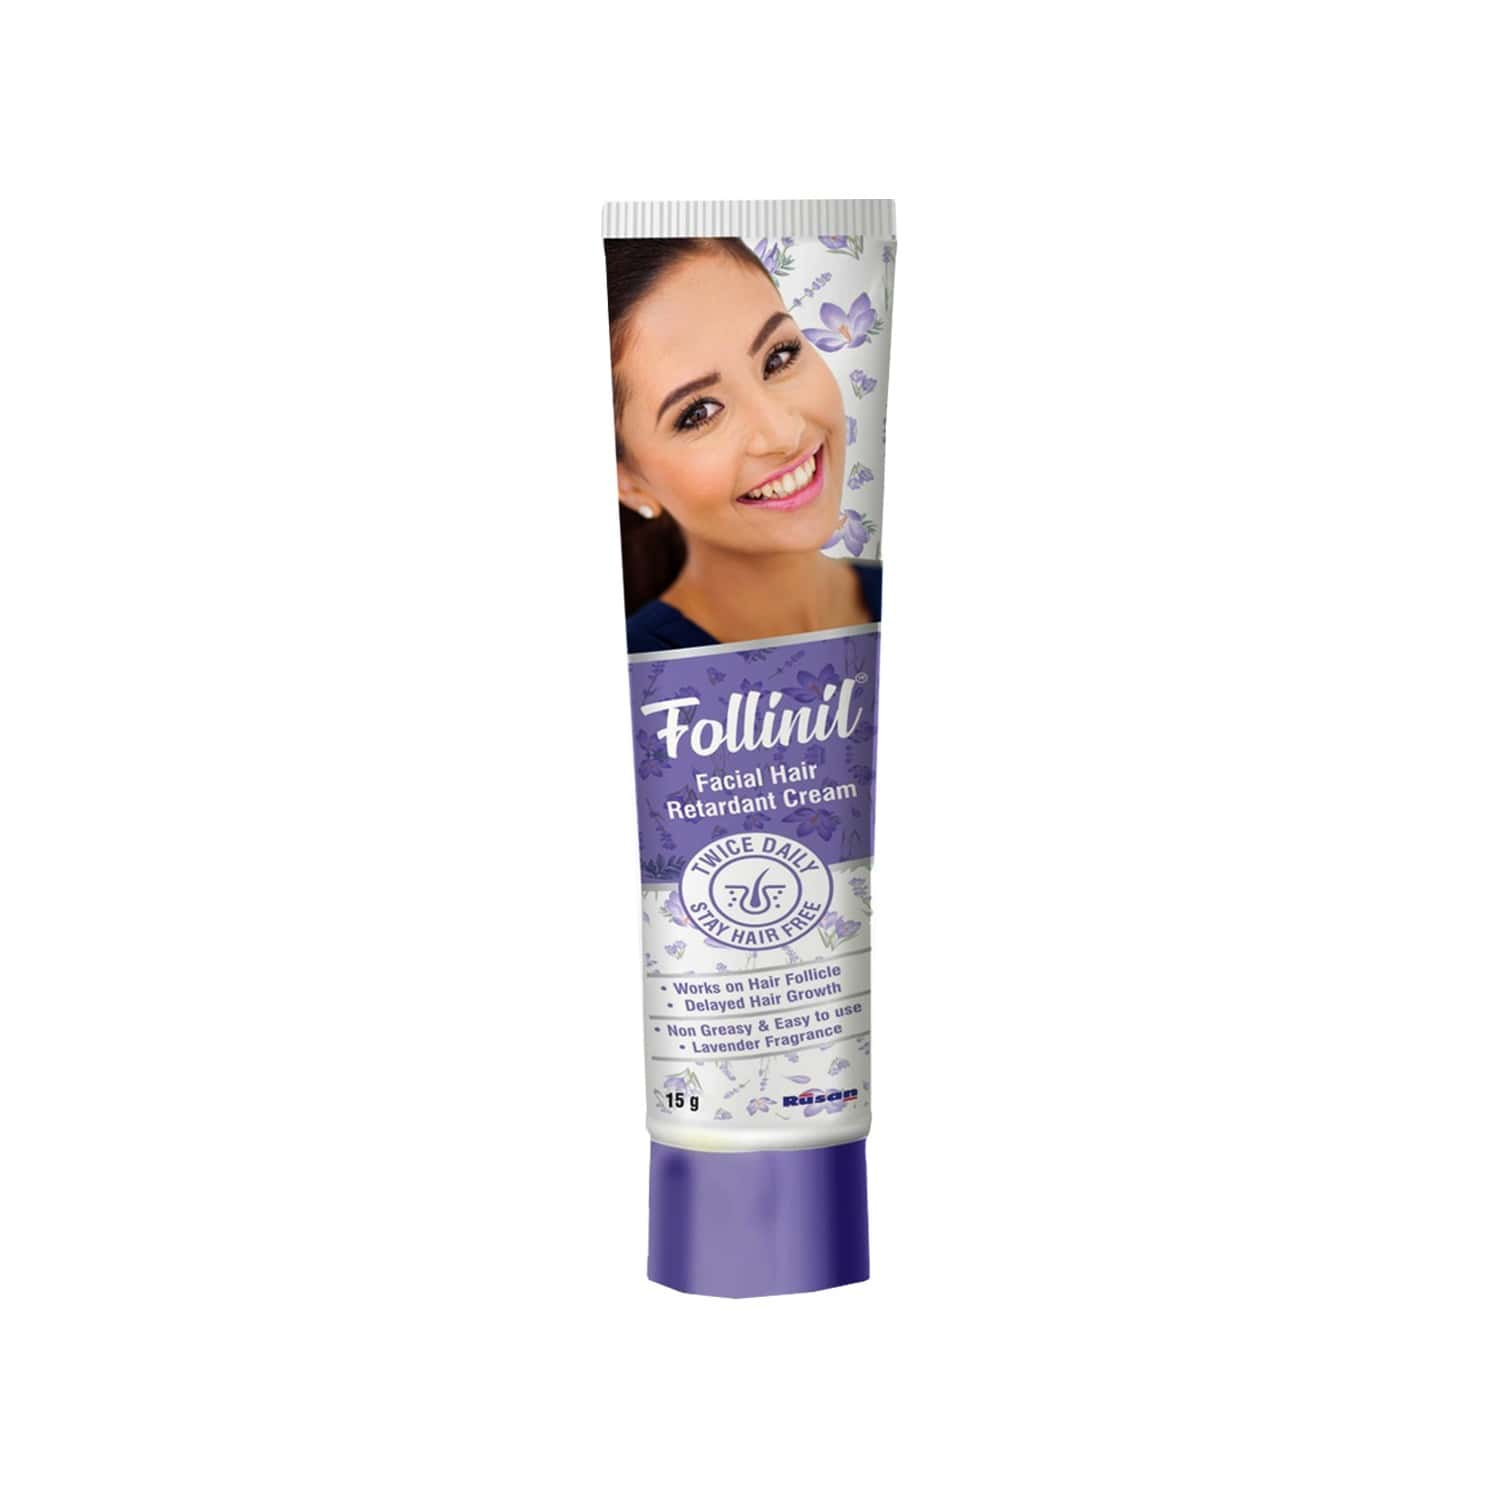 Follinil Facial Hair Retardant Cream - 15g